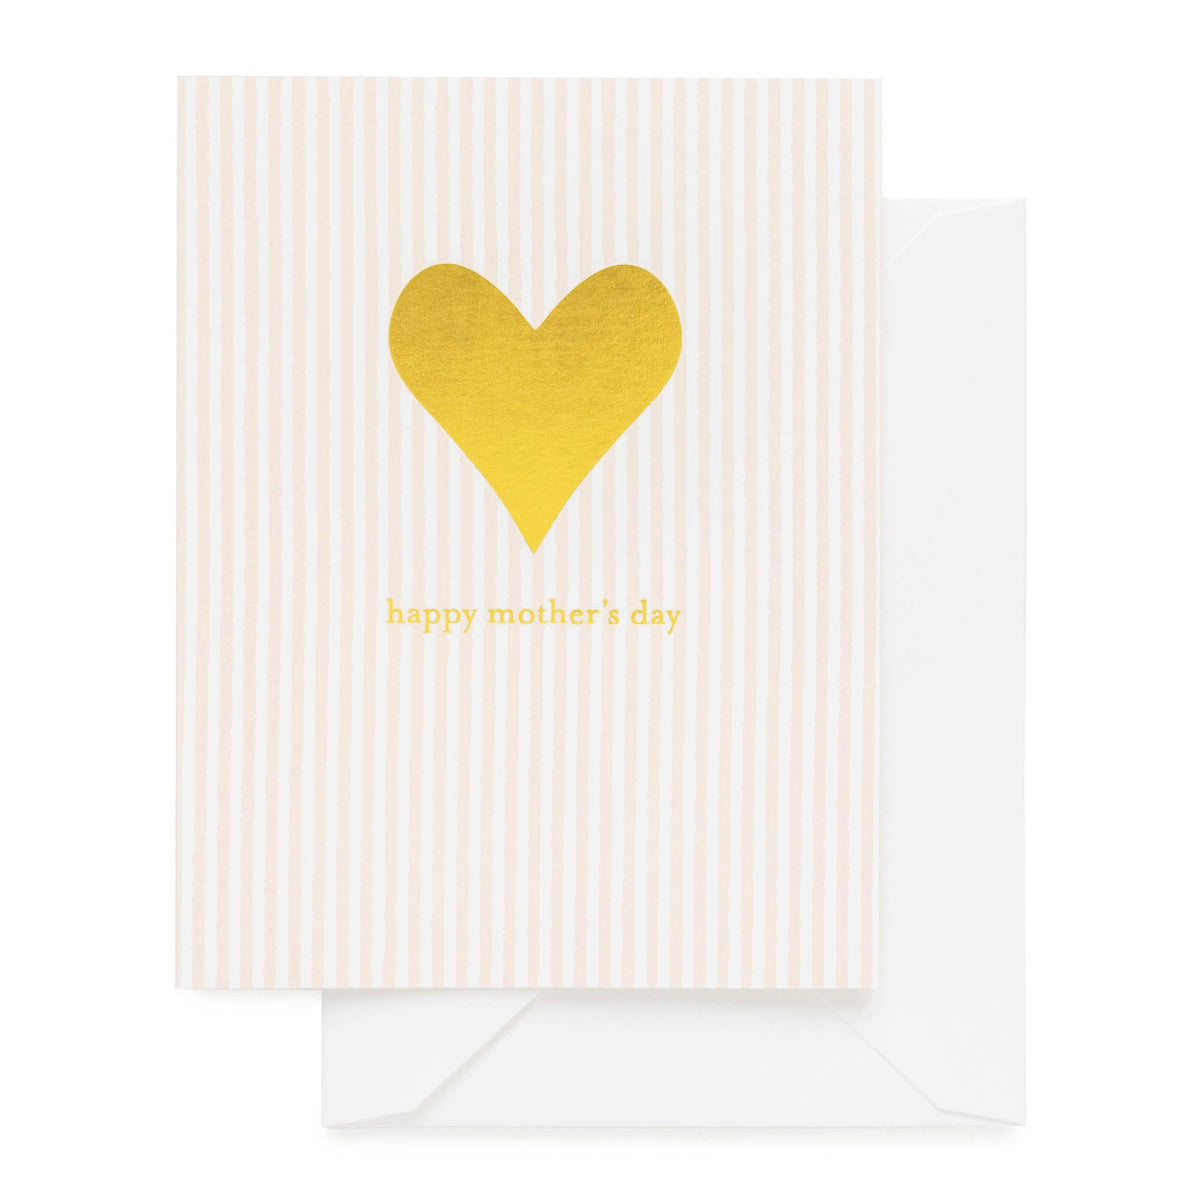 Pink stripe card printed with gold foil heart and happy mother's day